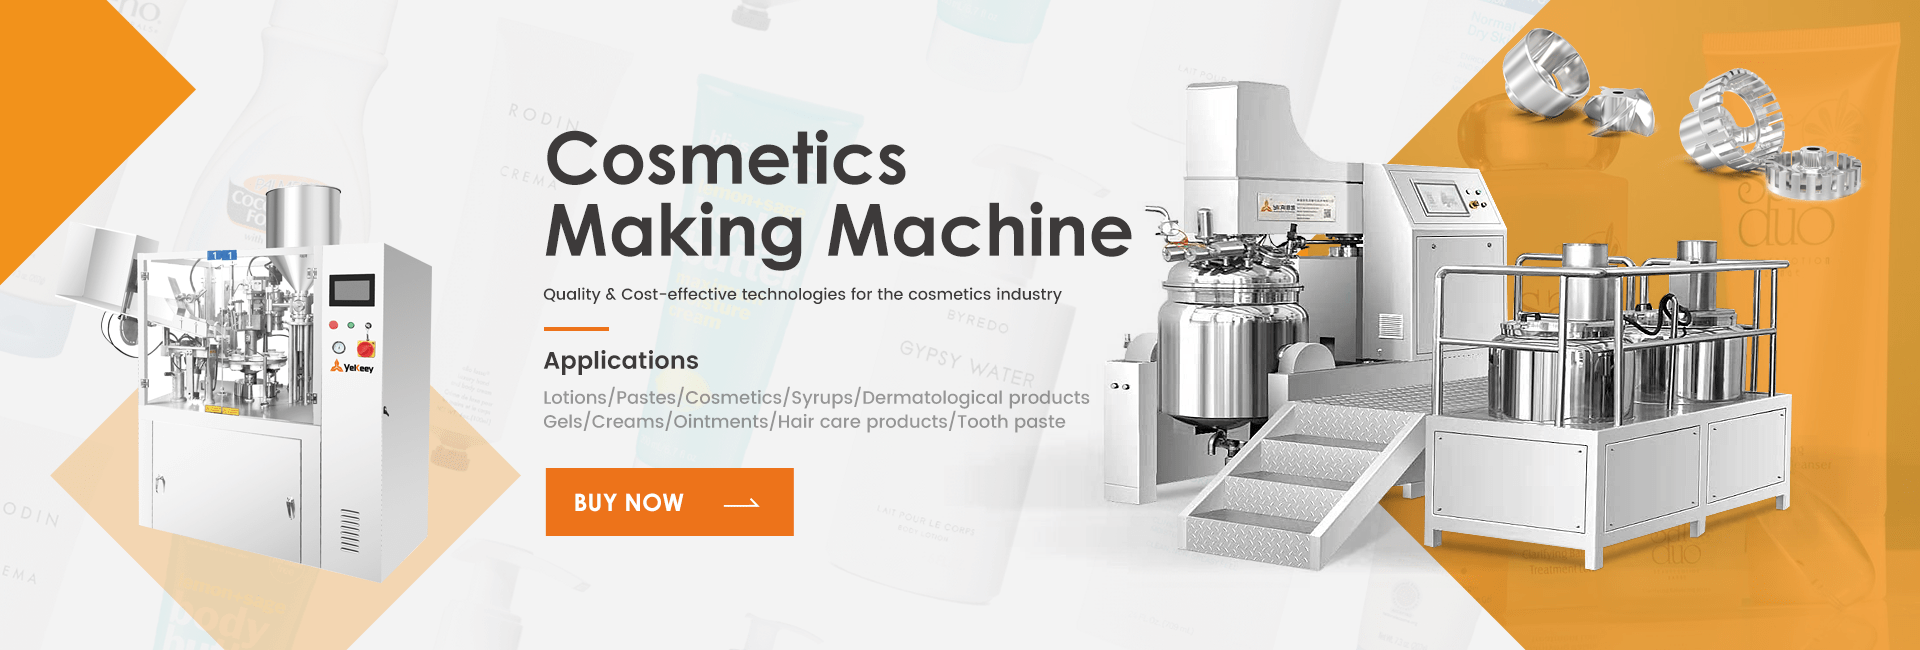 Cosmetics making machine